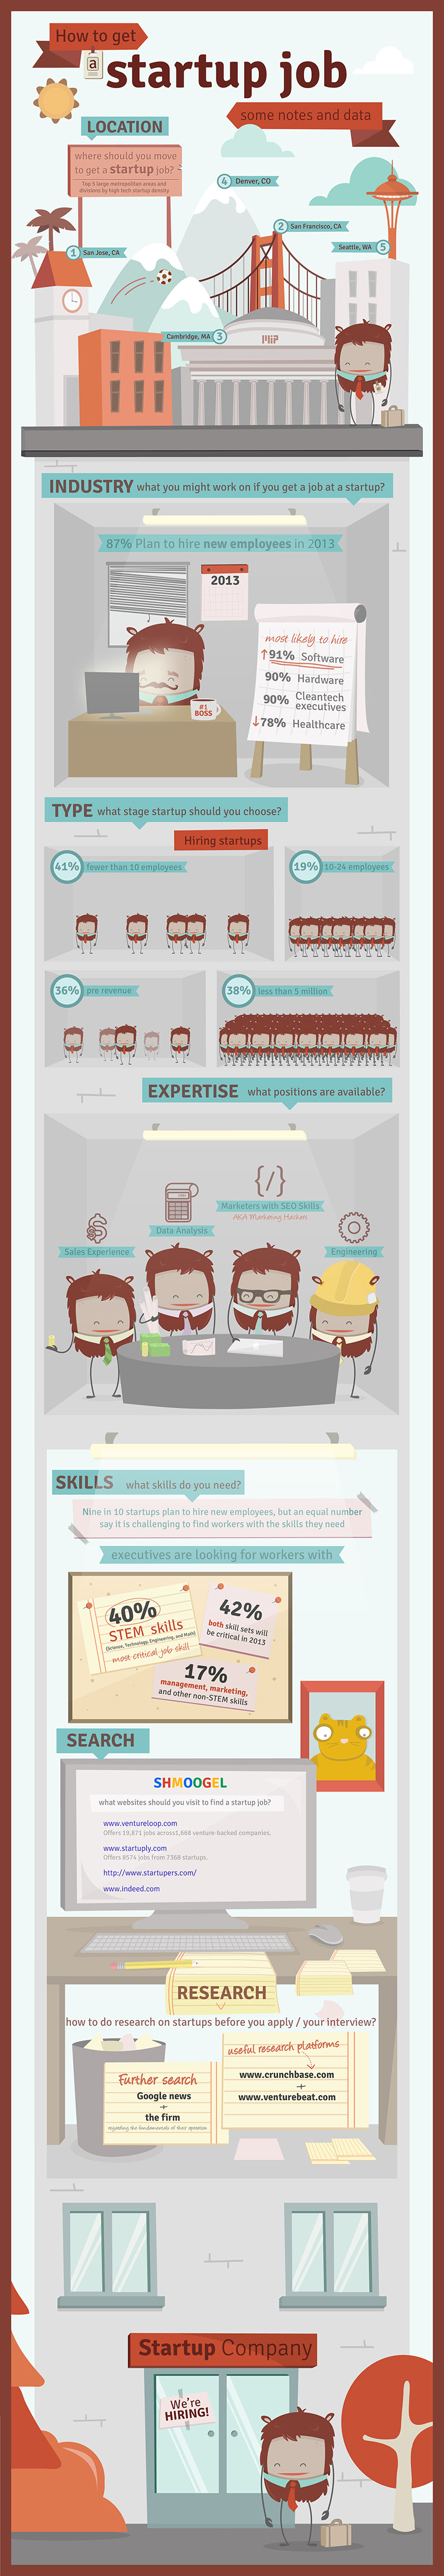 Infographic: How To Get Startup Job Some Notes And Data